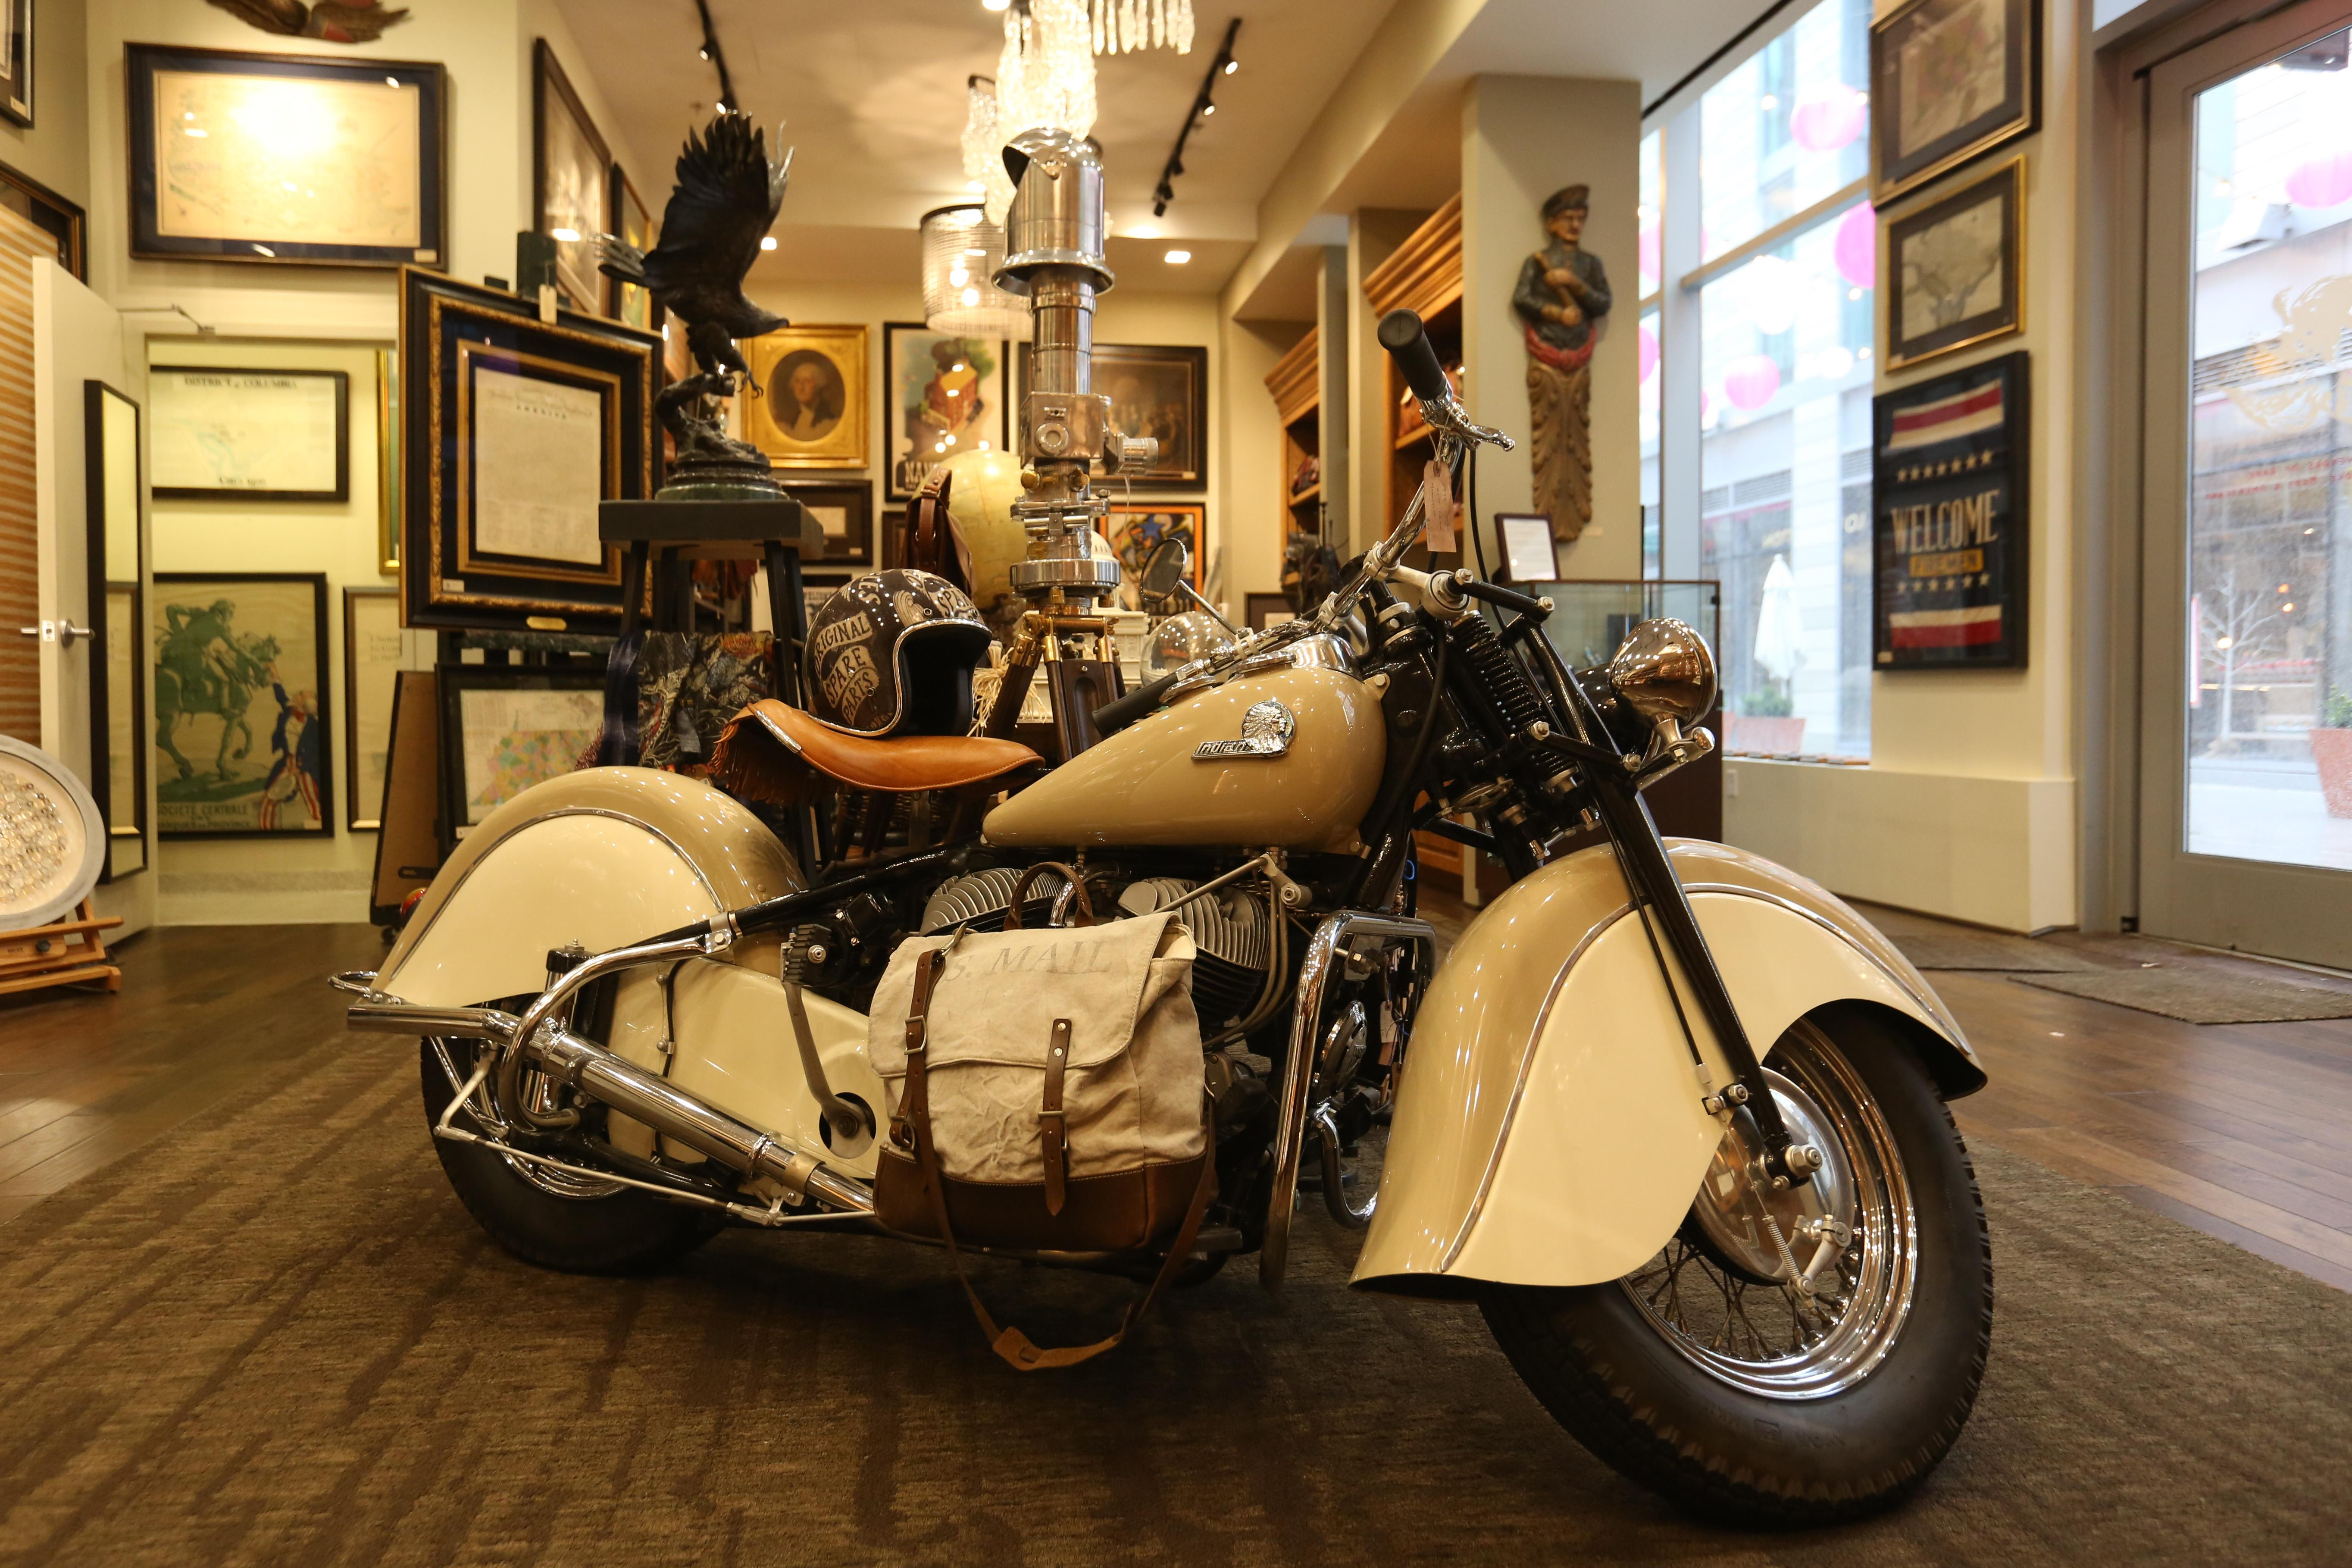 Restored 1946 Indian Chief motorcycle - $65,000, available at The Great Republic. (Amanda Andrade-Rhoades/DC Refined)